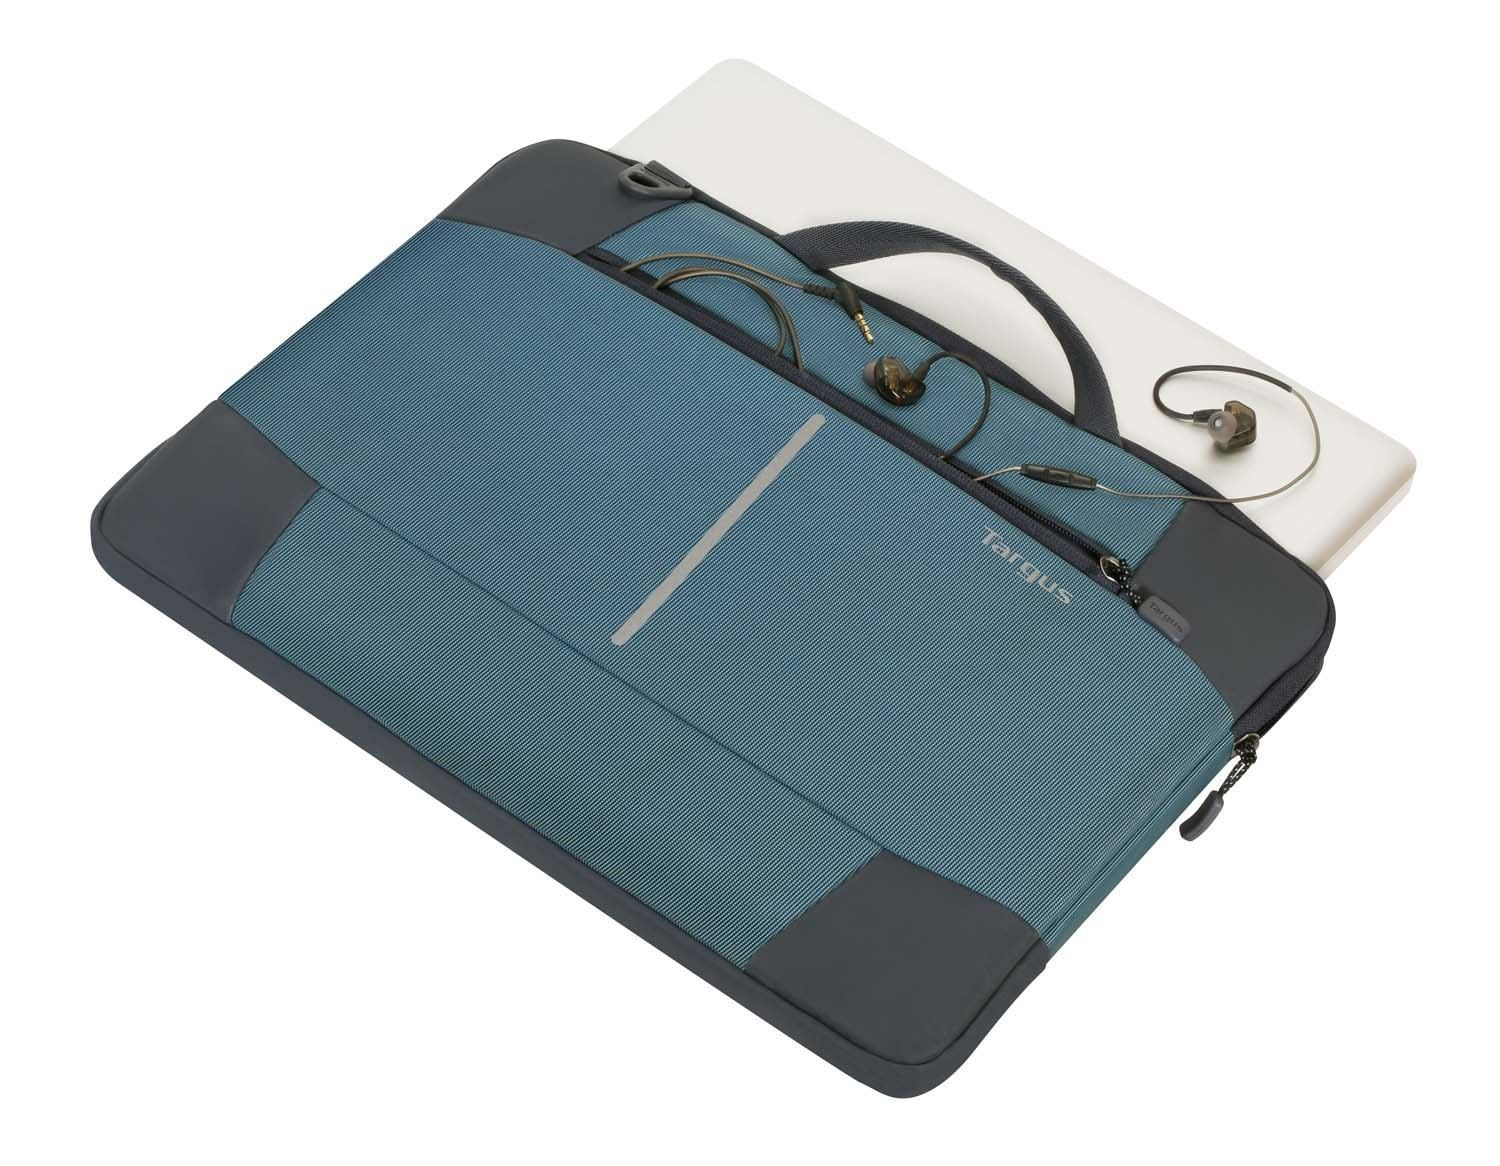 TSS95402AU - 15-6 Bex II Slipcase-Stone BlueBlack Top With MacBook